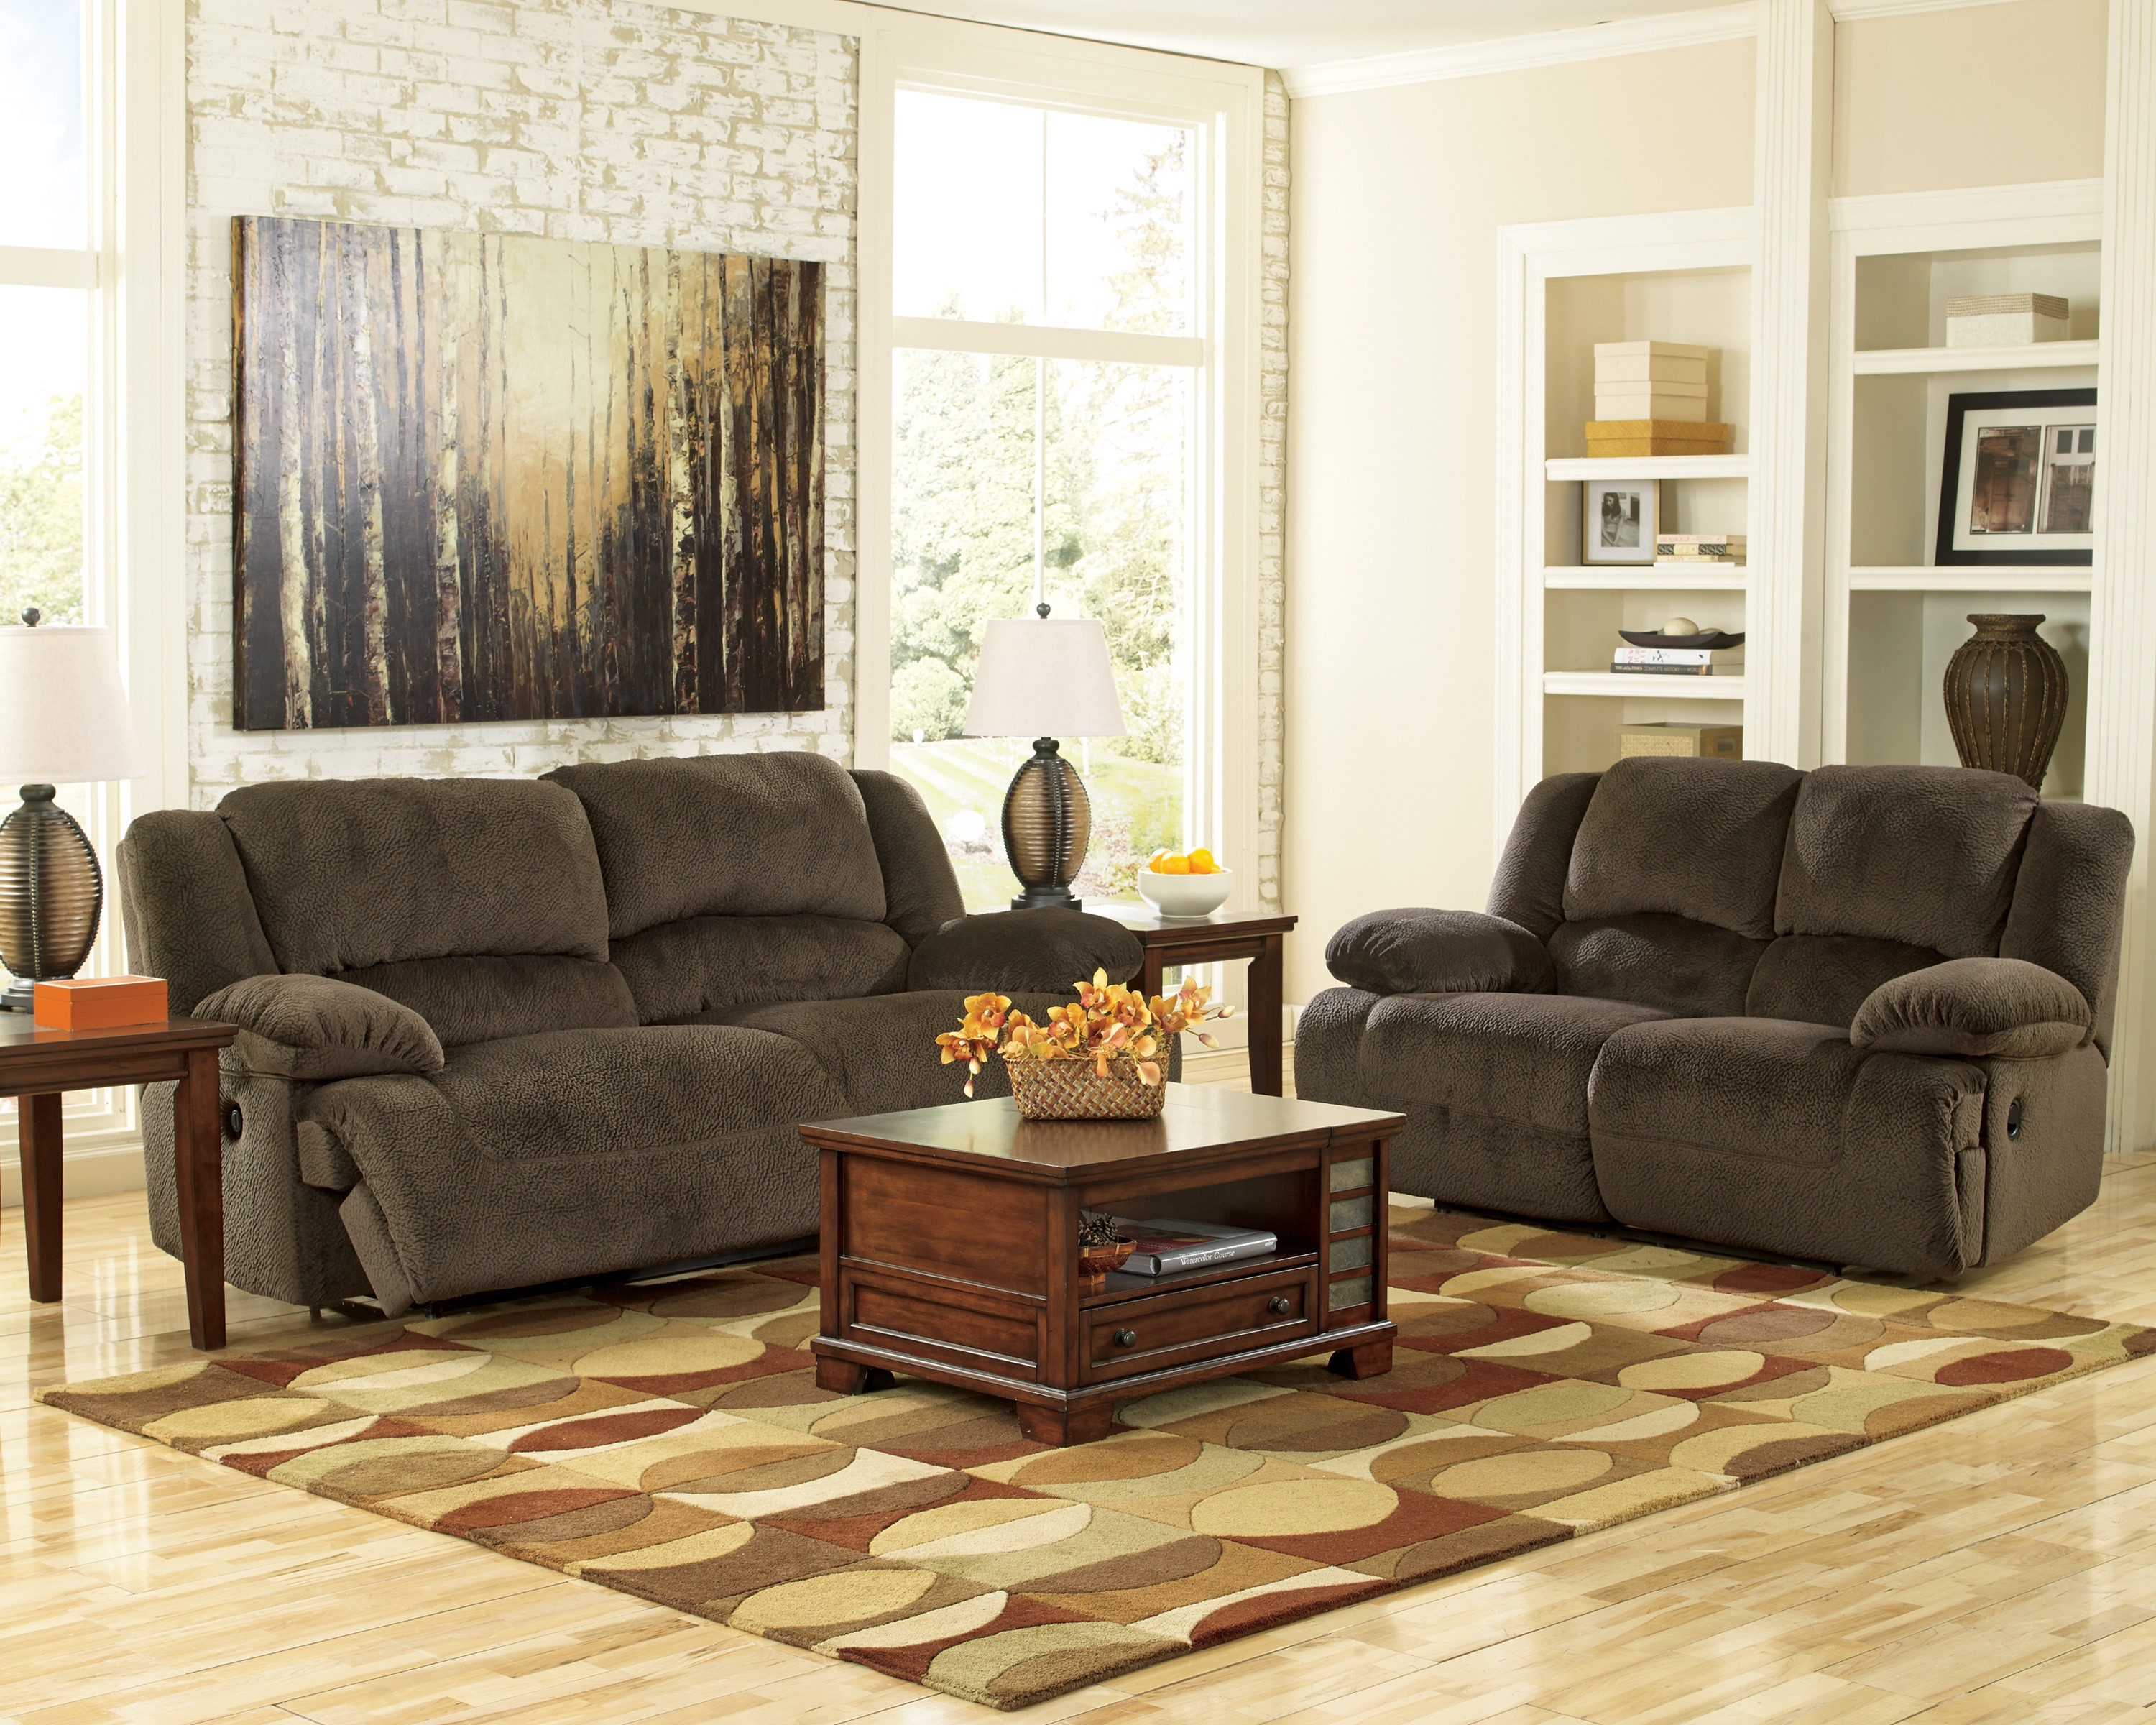 Toletta Chocolate 2 Seat Power Reclining Sofa From Ashley